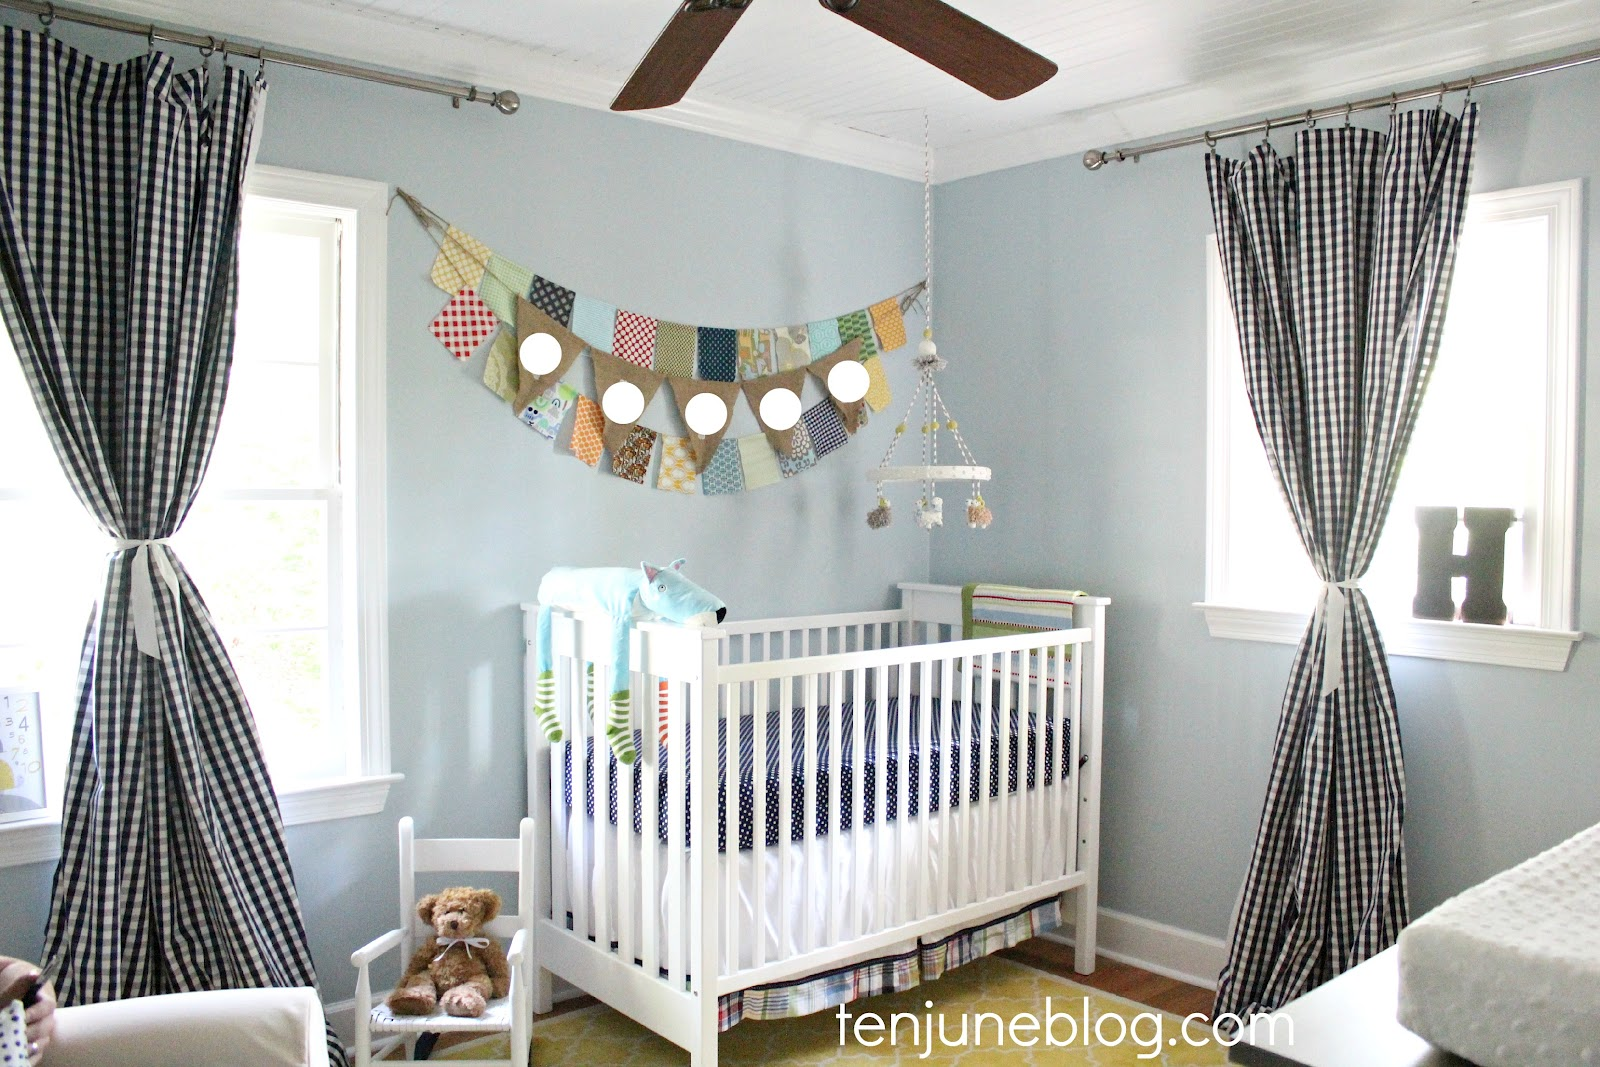 Ten June Baby Boy Nursery Source List